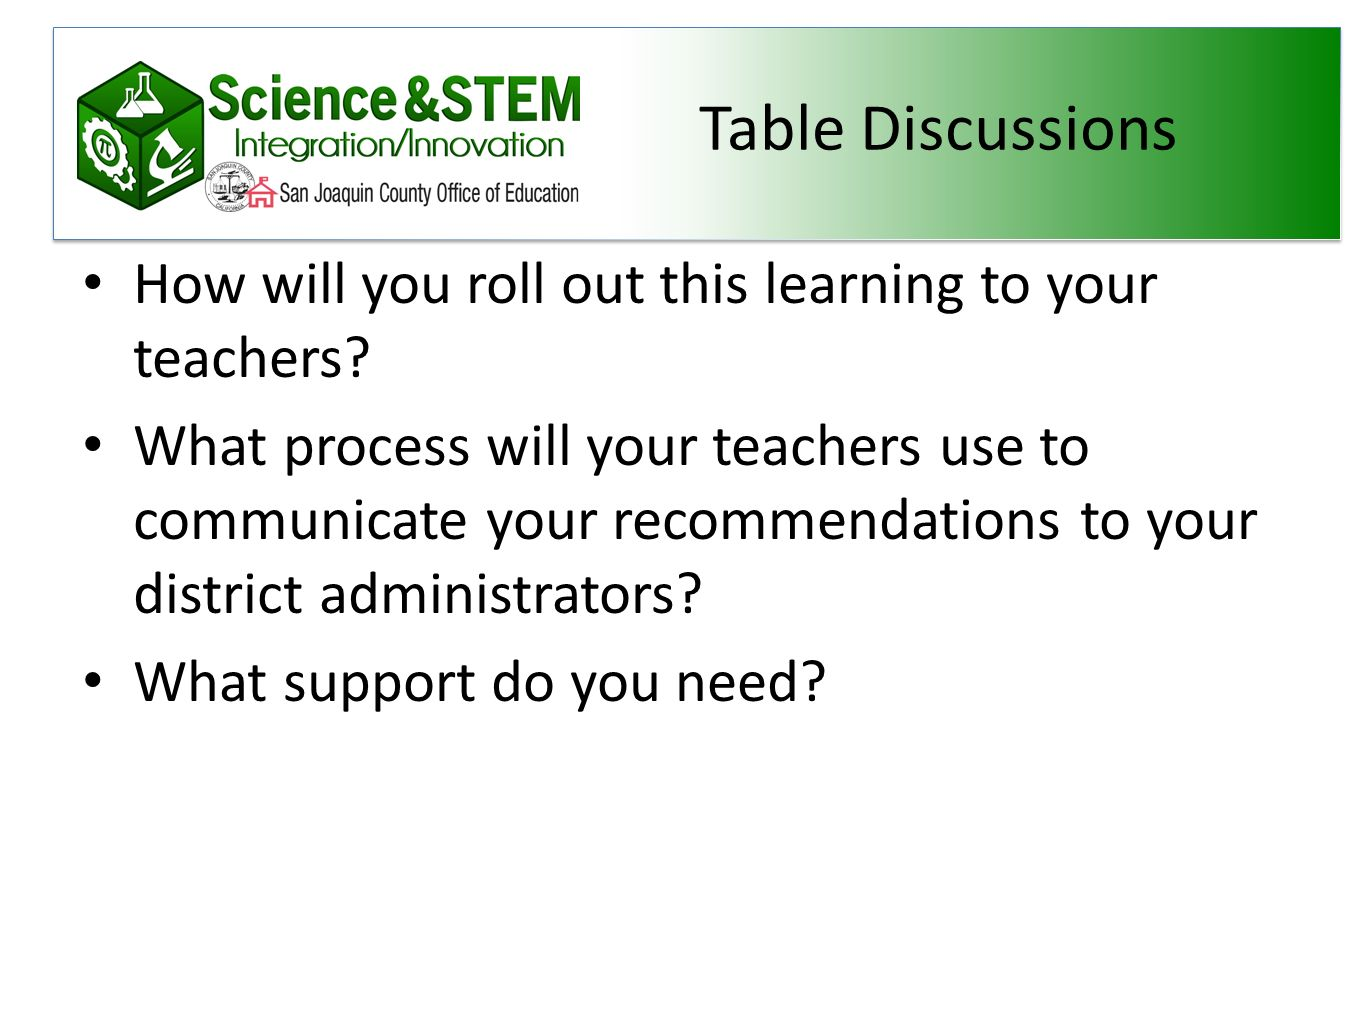 Teachers, what would you reccomend?